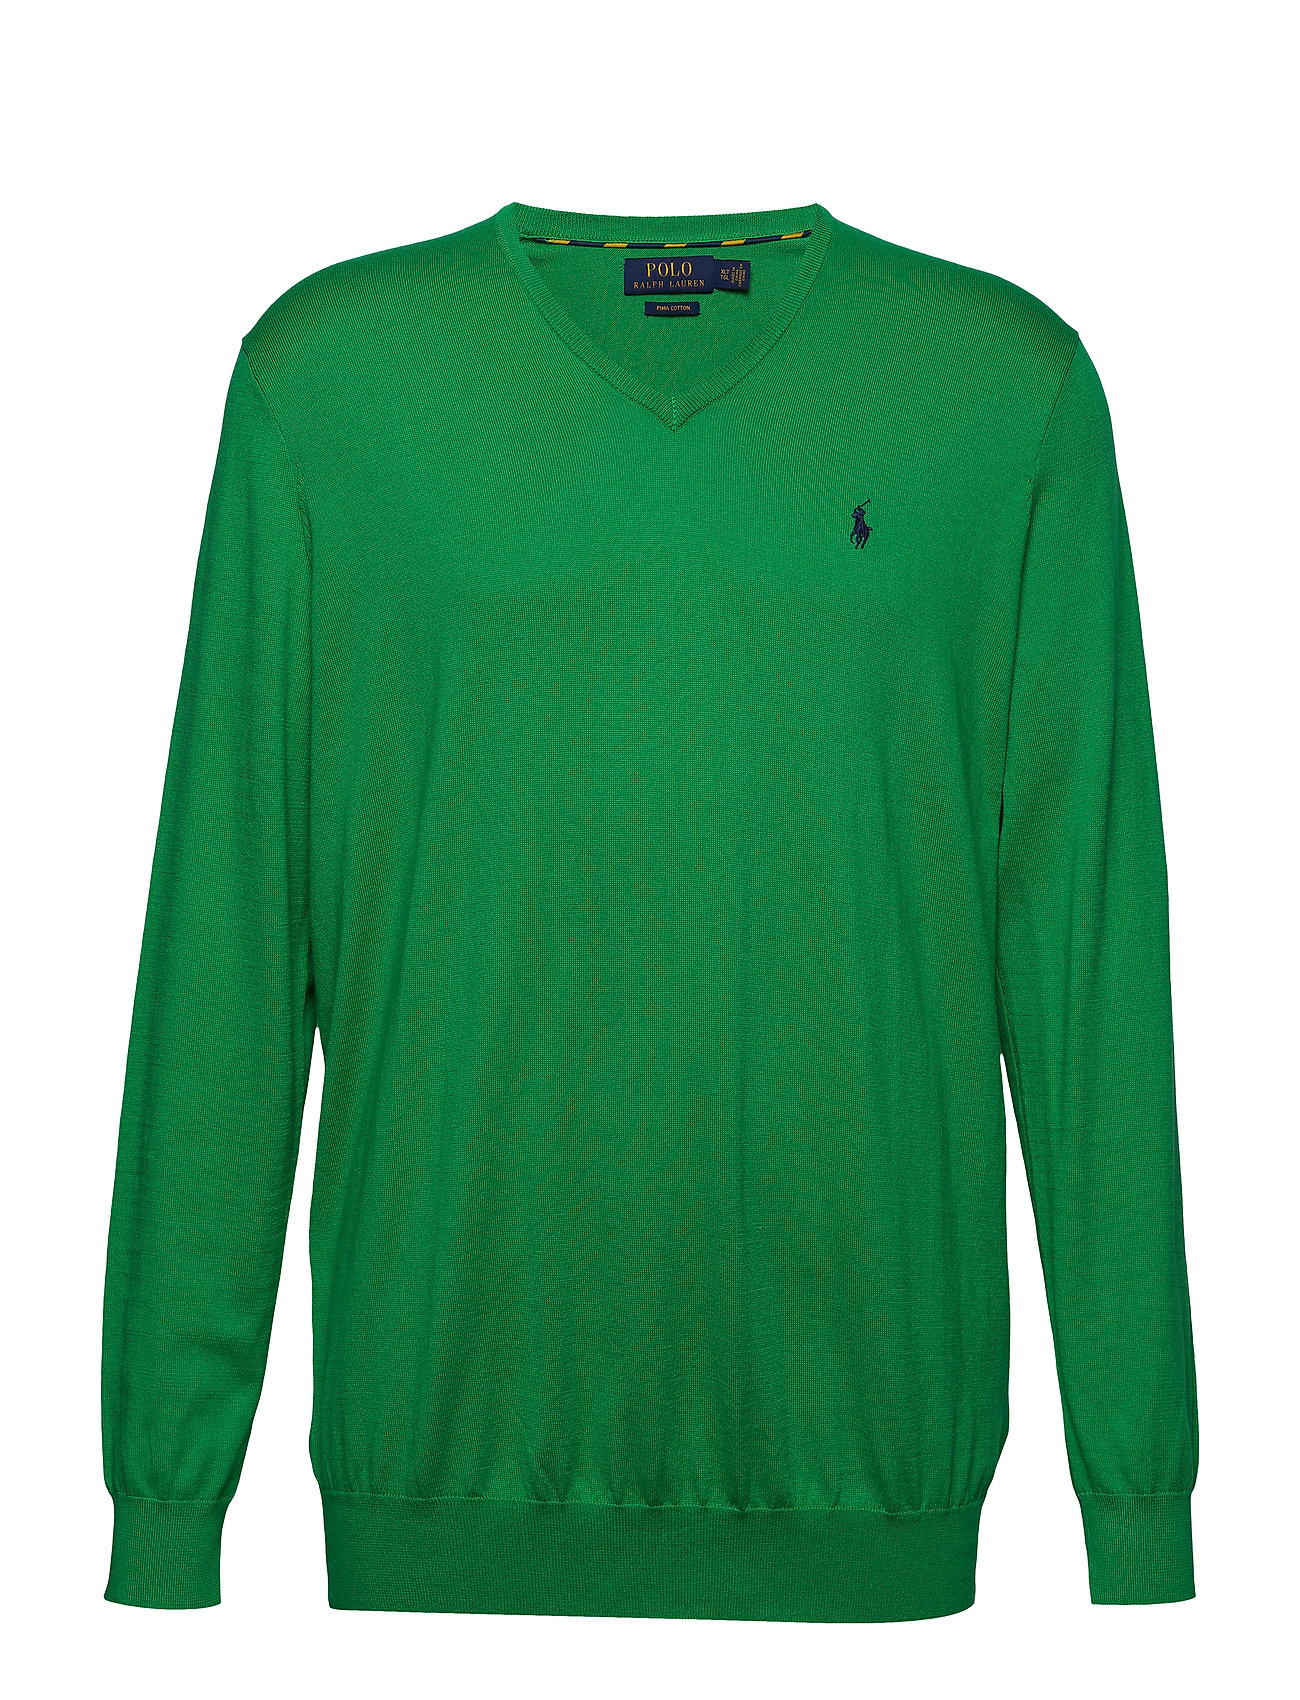 Polo Ralph Lauren Big & Tall Cotton V-Neck Sweater